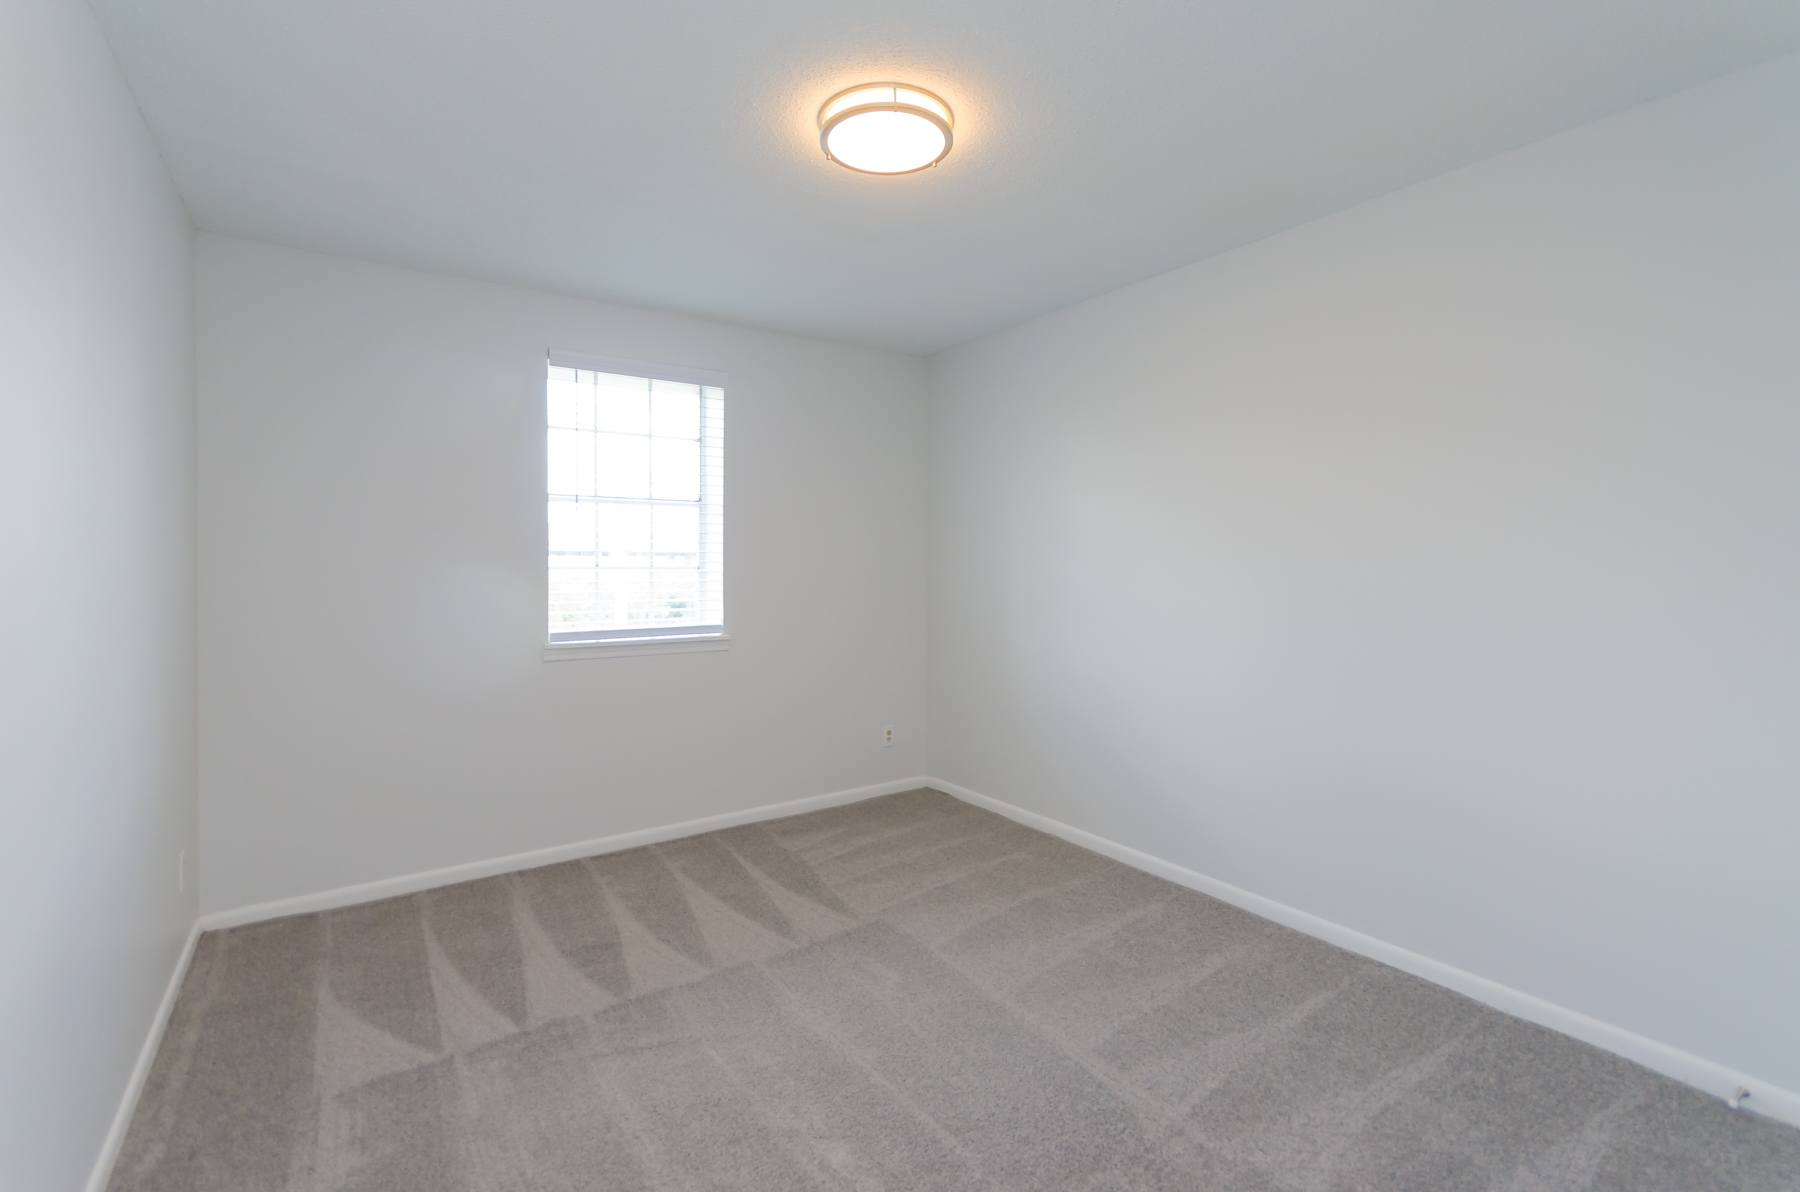 Apartment Interior at The Downtowner, Augusta, GA